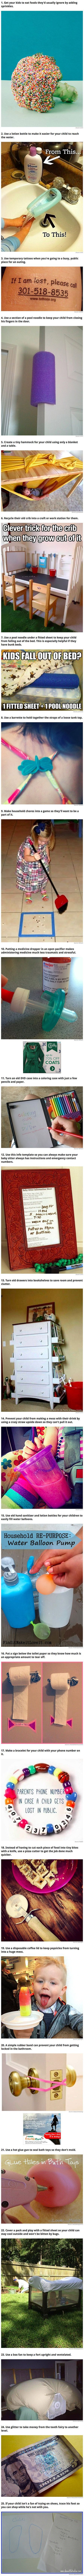 Here are some simple, yet useful, life hacks for geeky parents.: